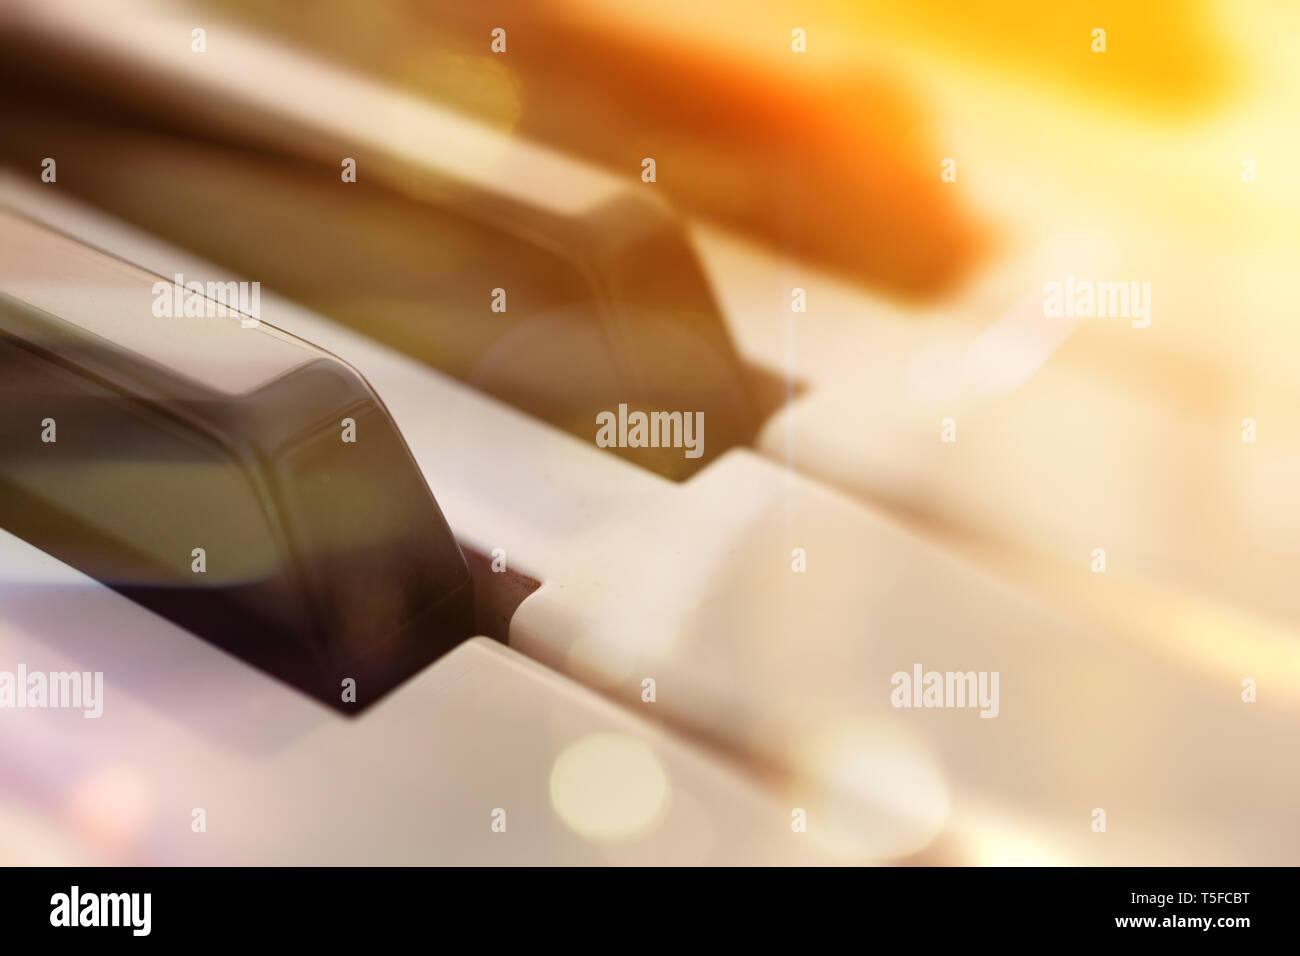 Piano keys abstract background Relax music for travel road